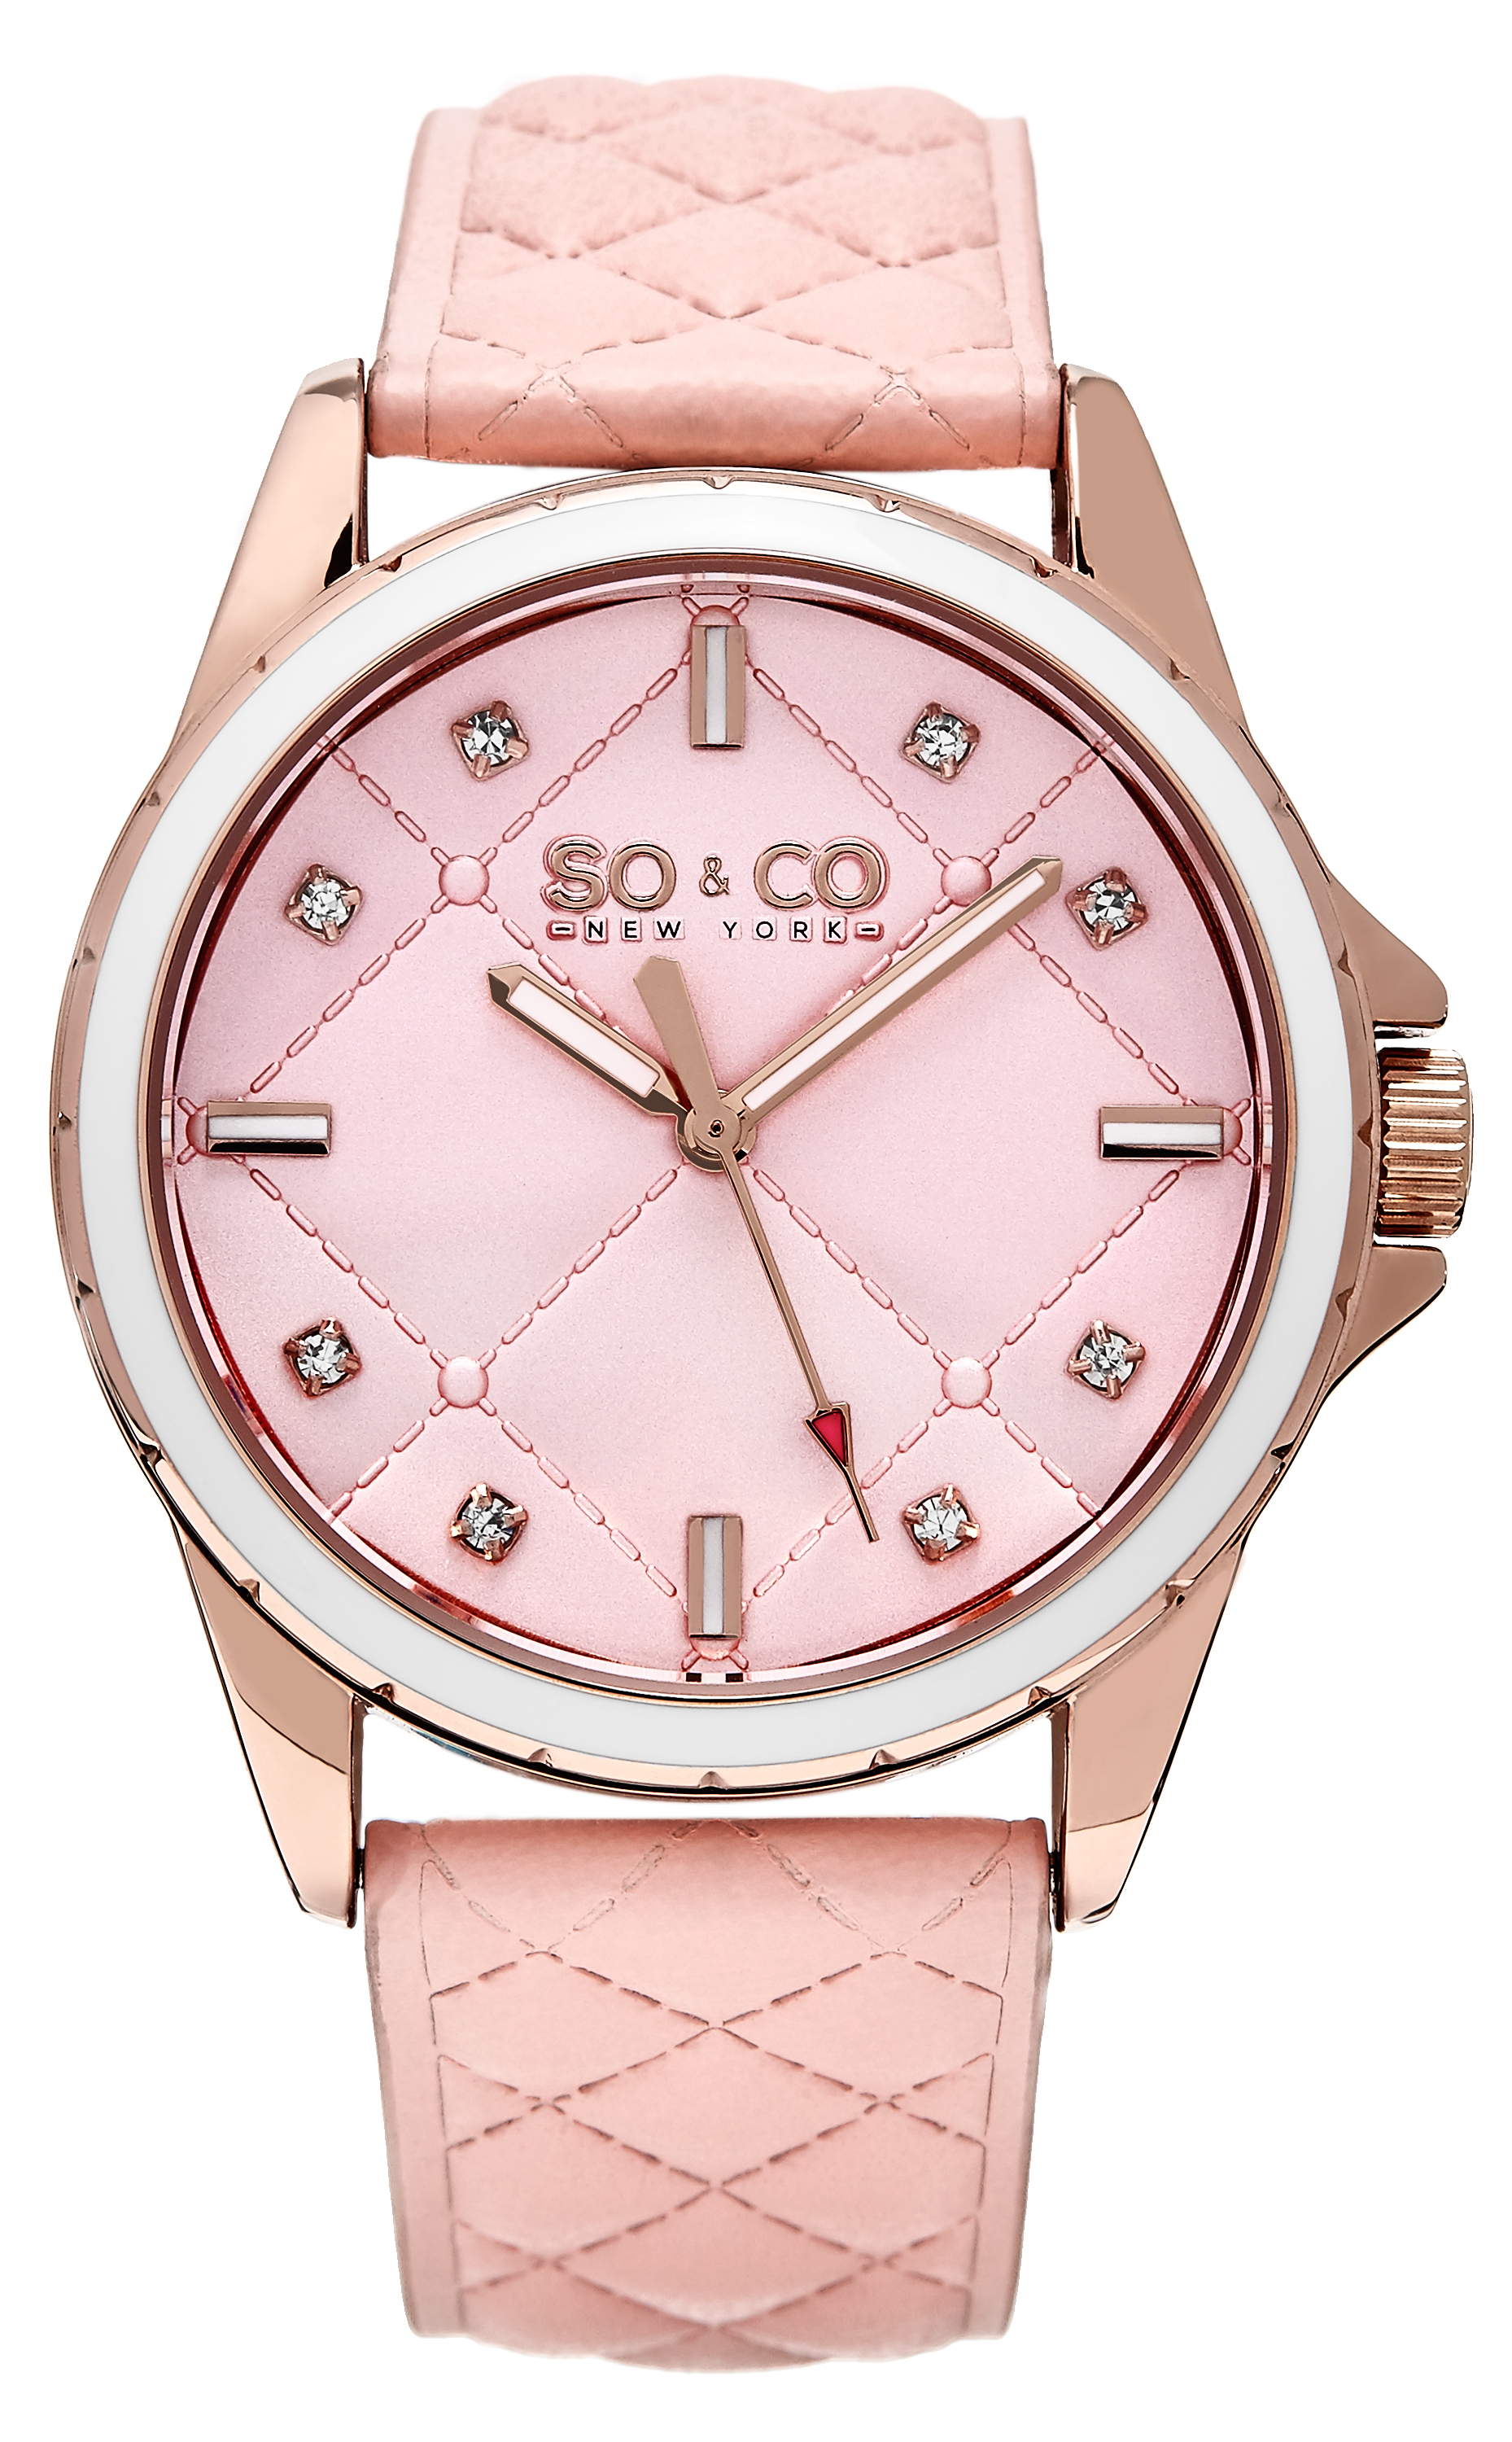 So & Co New York SoHo Dameklokke 5201.4 Rosa/Lær Ø38 mm - So & Co New York